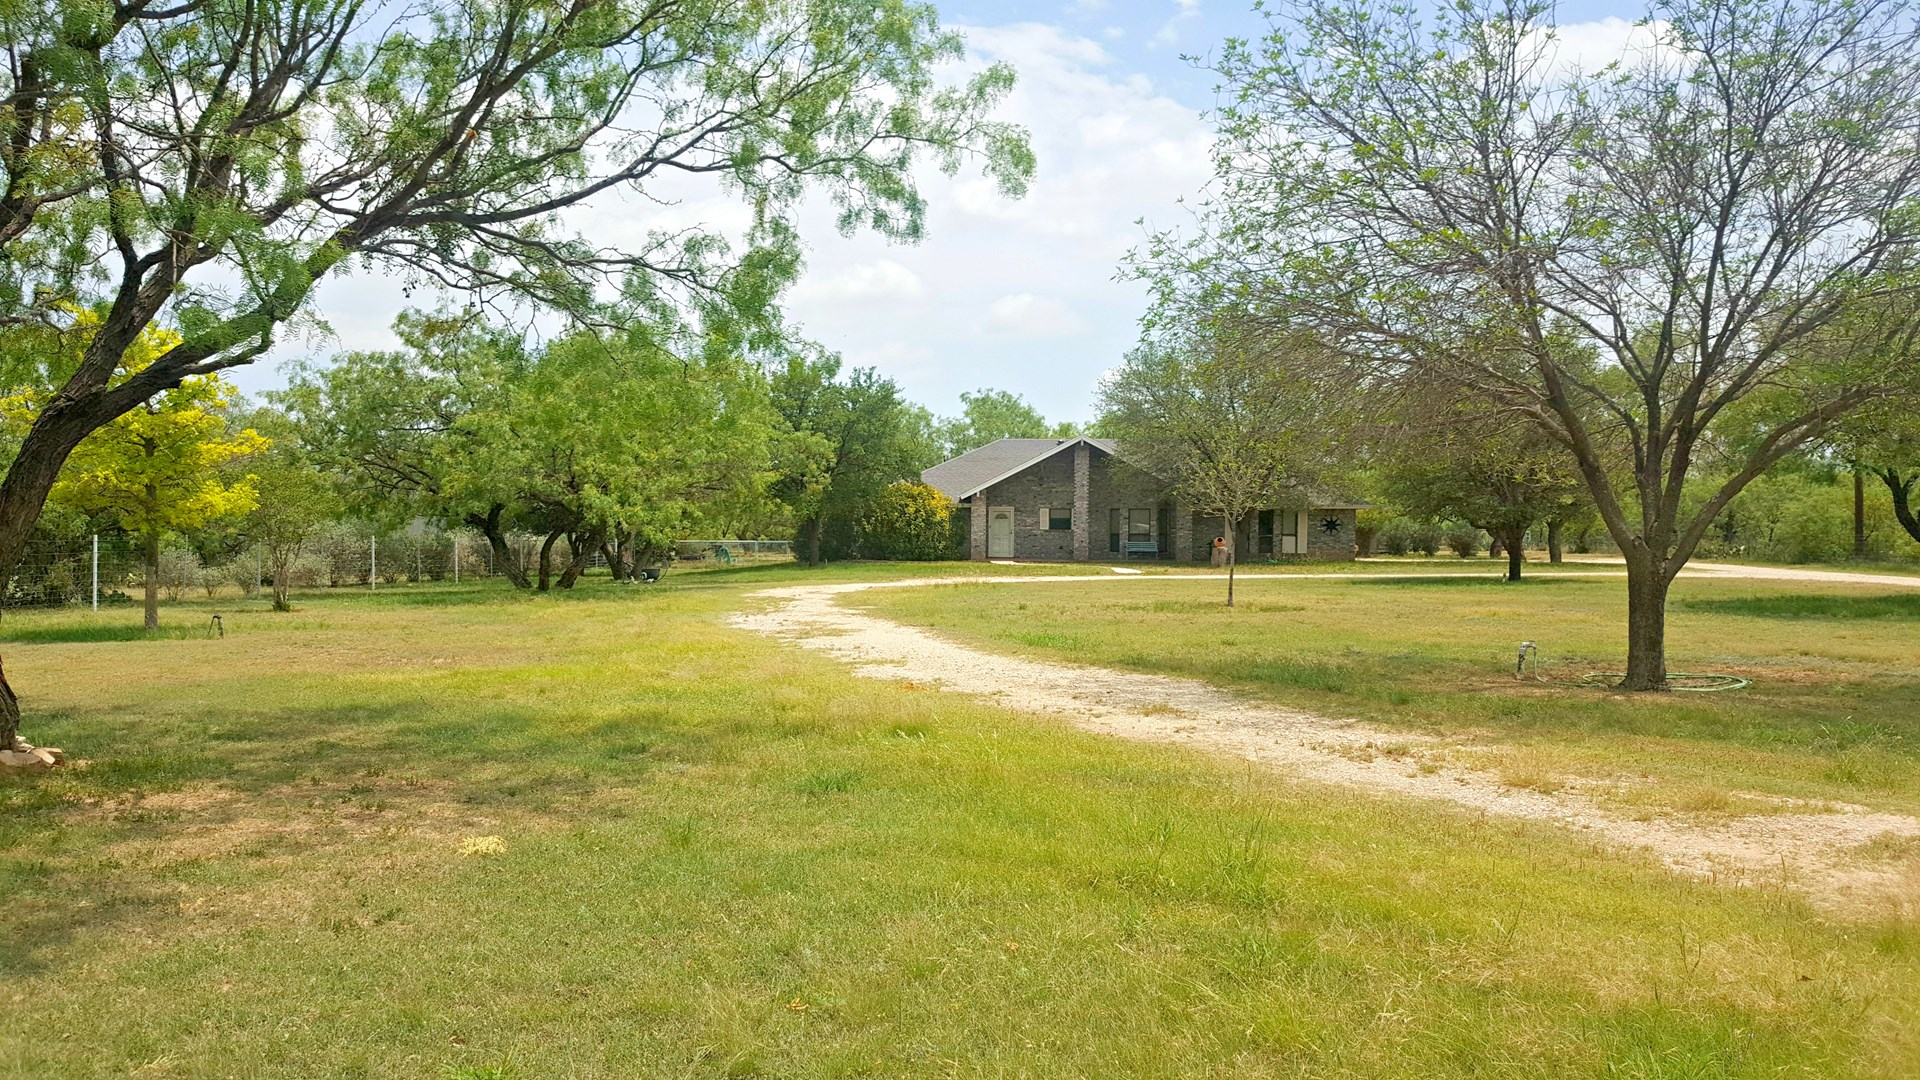 Home with acreage near San Angelo, Tx in Dove Creek Addition